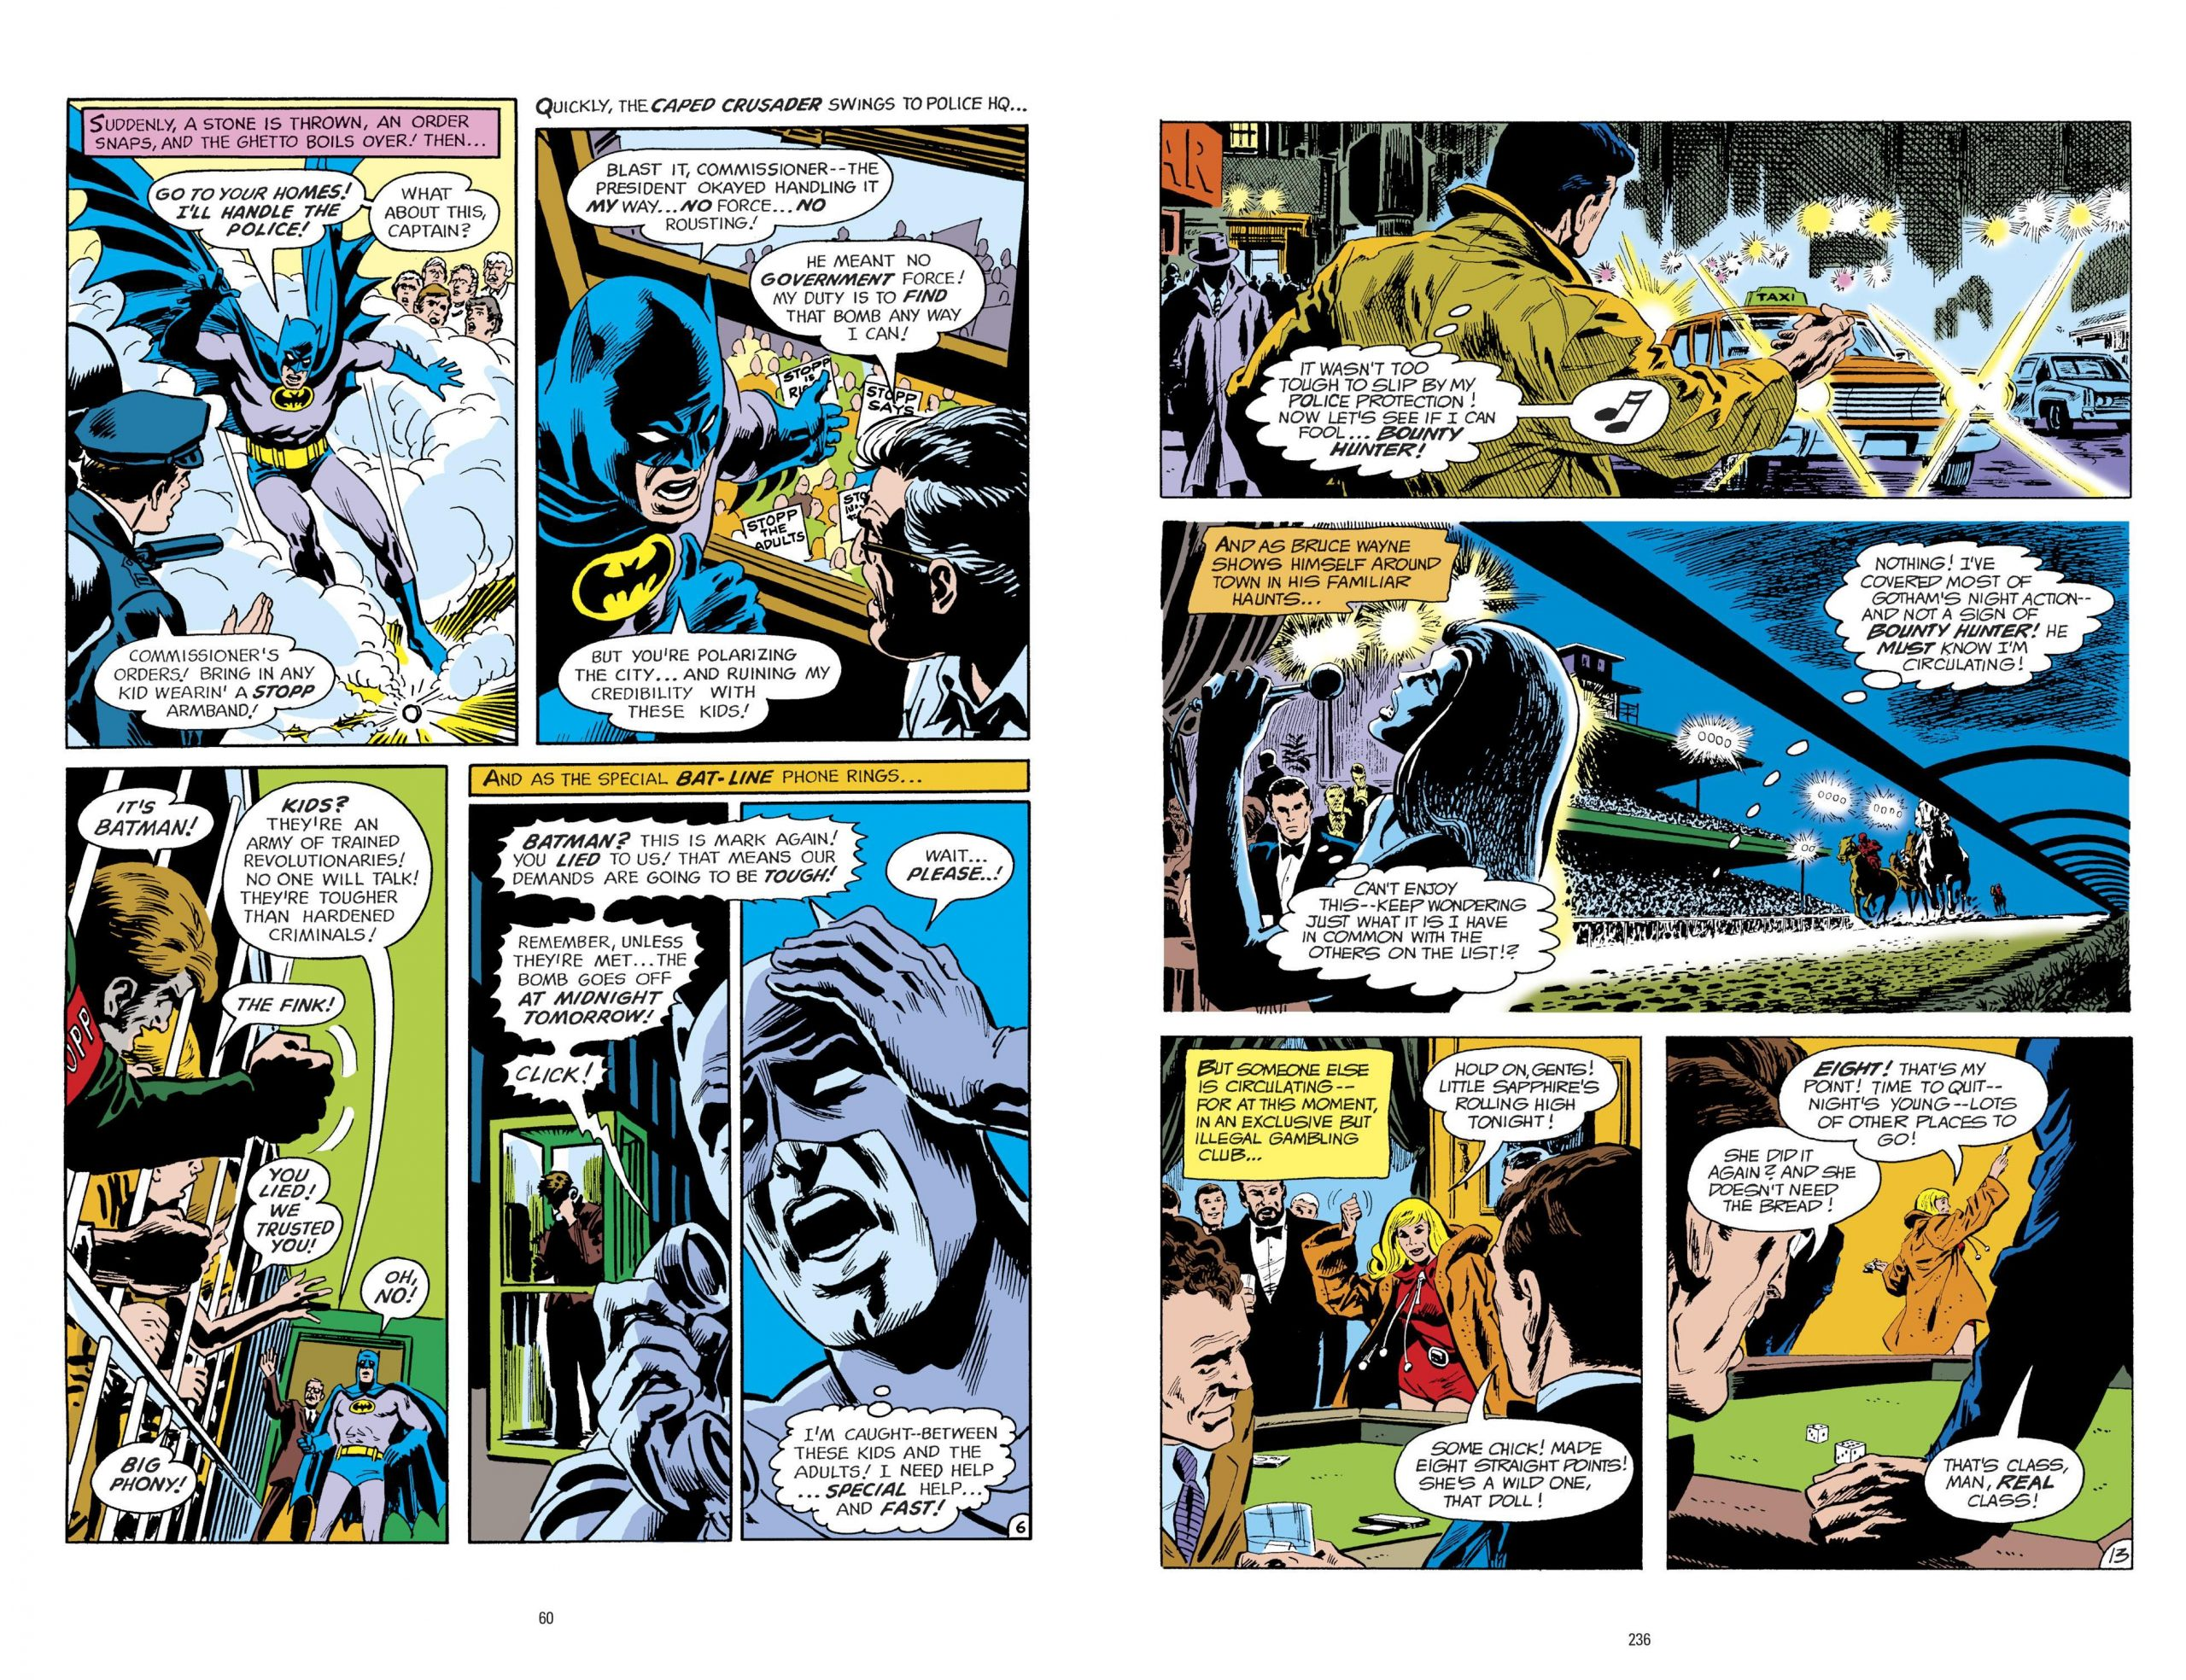 Batman in the Brave and the Bold - The Bronze Age V2 review